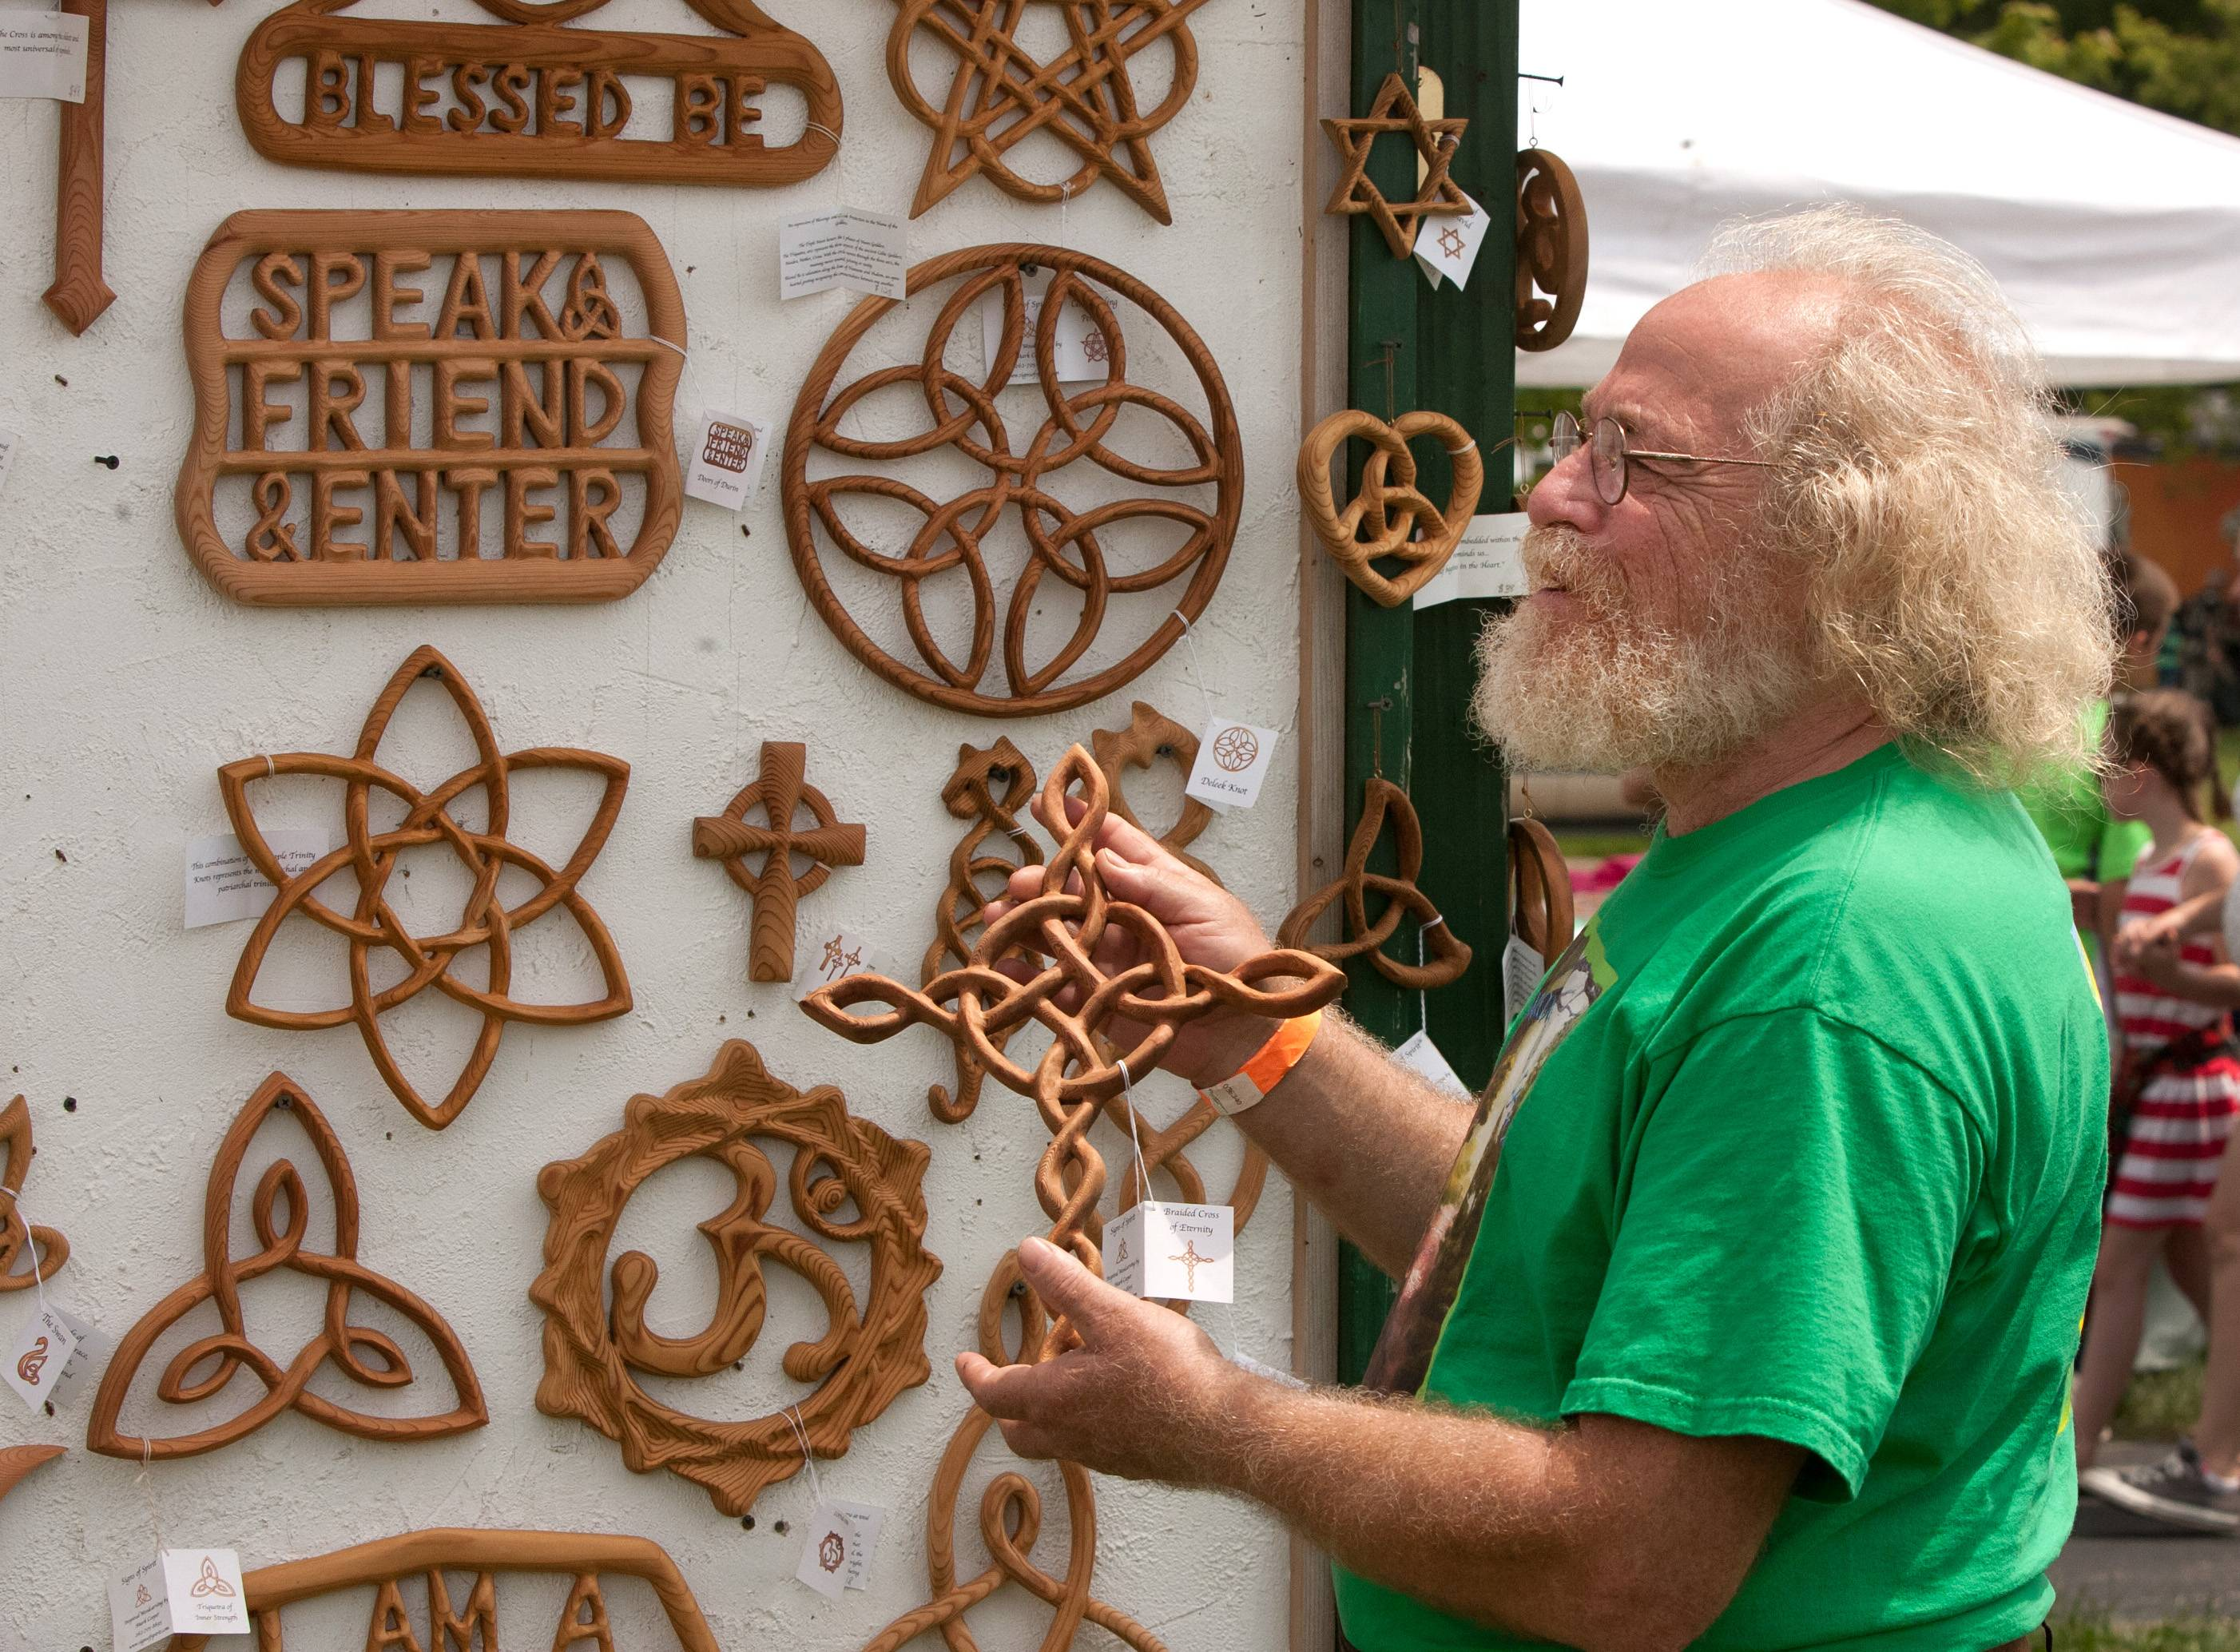 Mark Cooper of Magnolia, Texas, sells hand-carved woodwork during the Scottish Festival and Highland Games at Hamilton Lakes in Itasca.